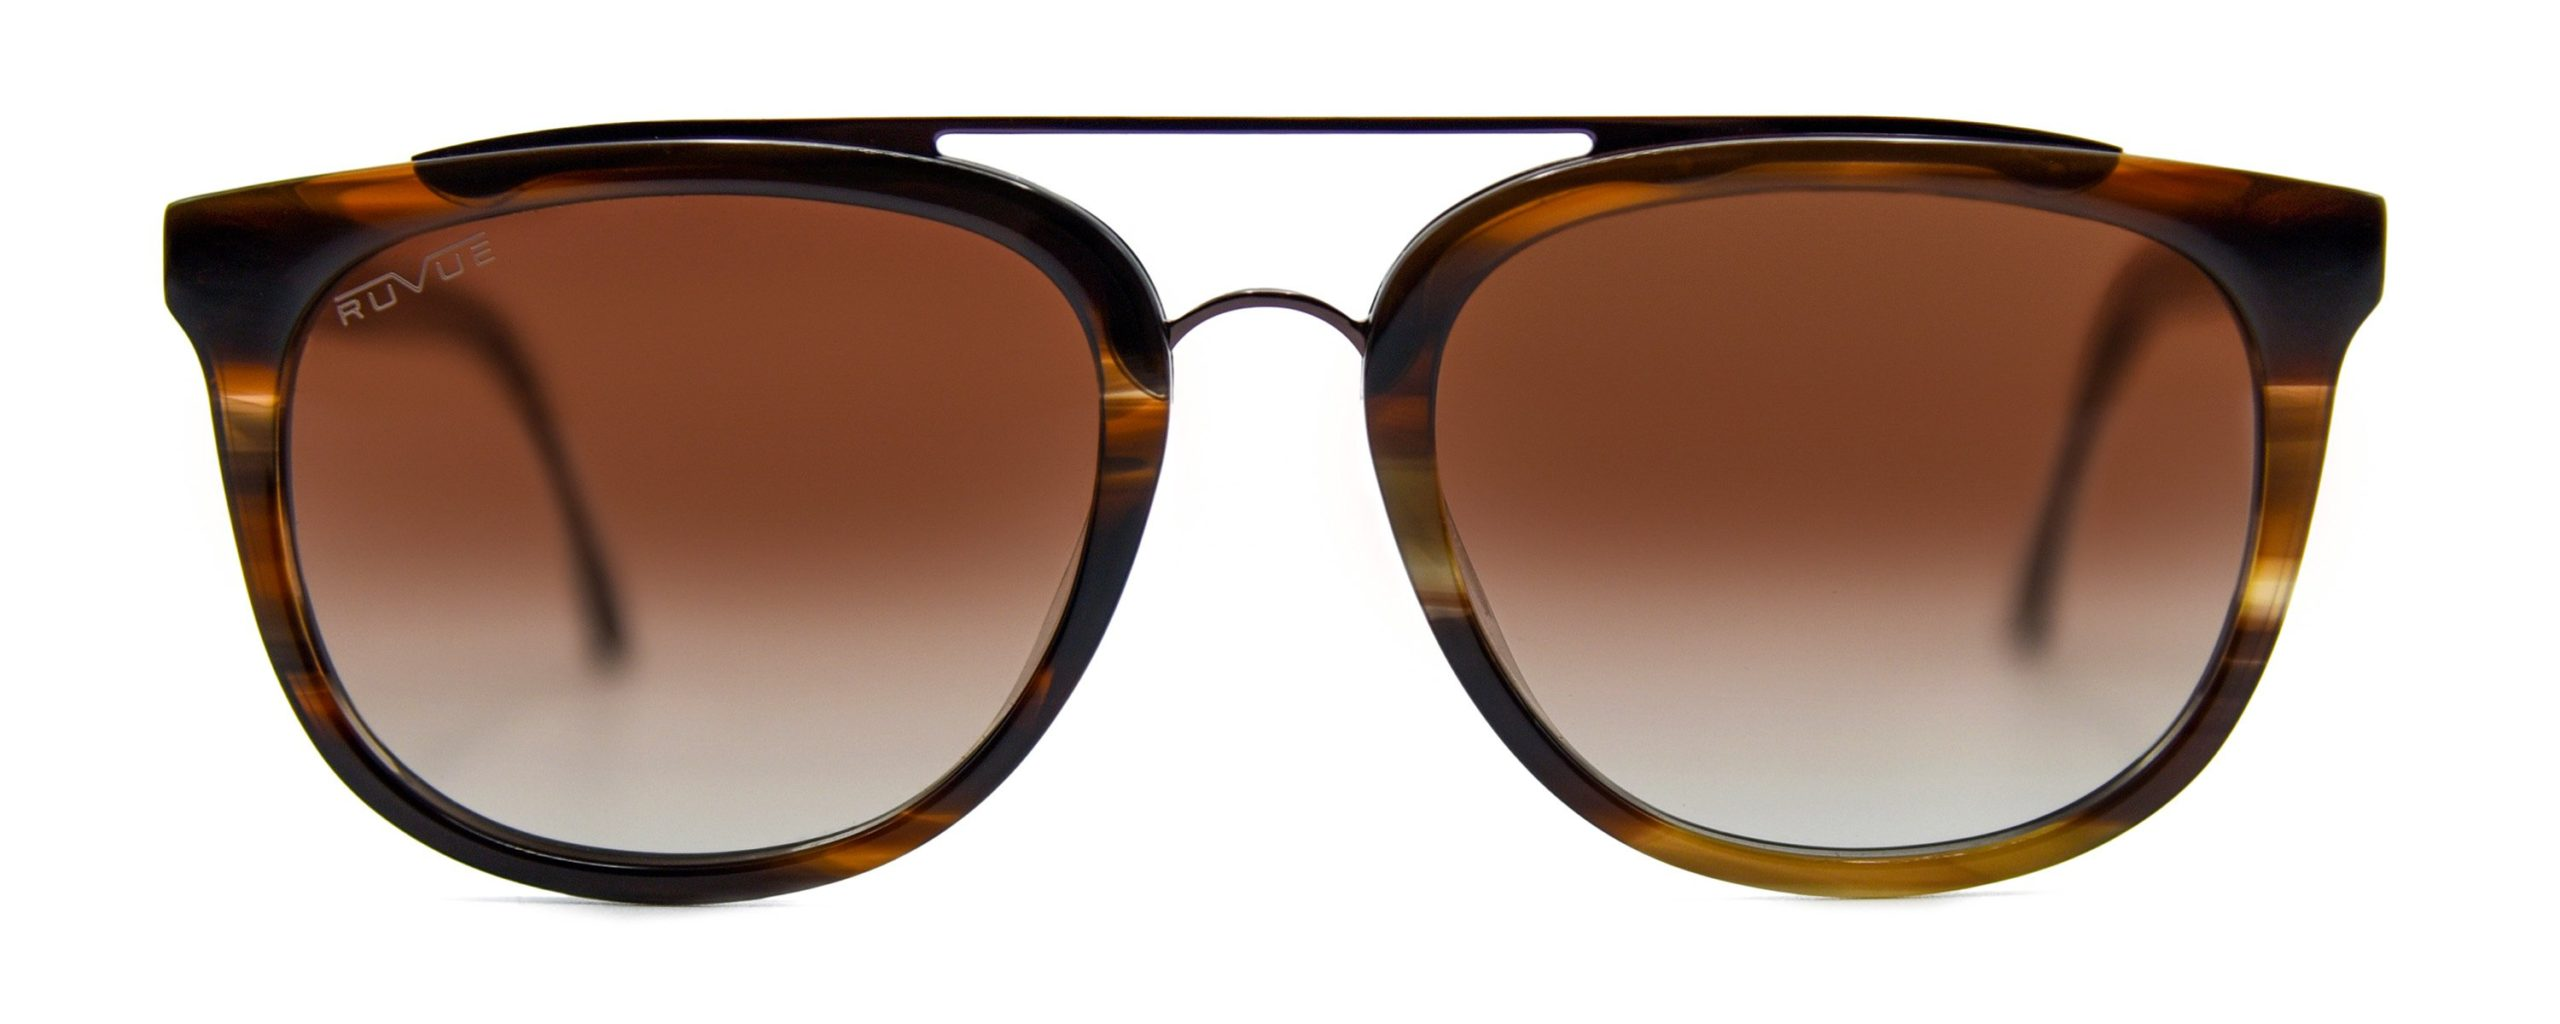 Zena - Chestnut Tortoise - Brown Gradient Polarized Lenses - Front